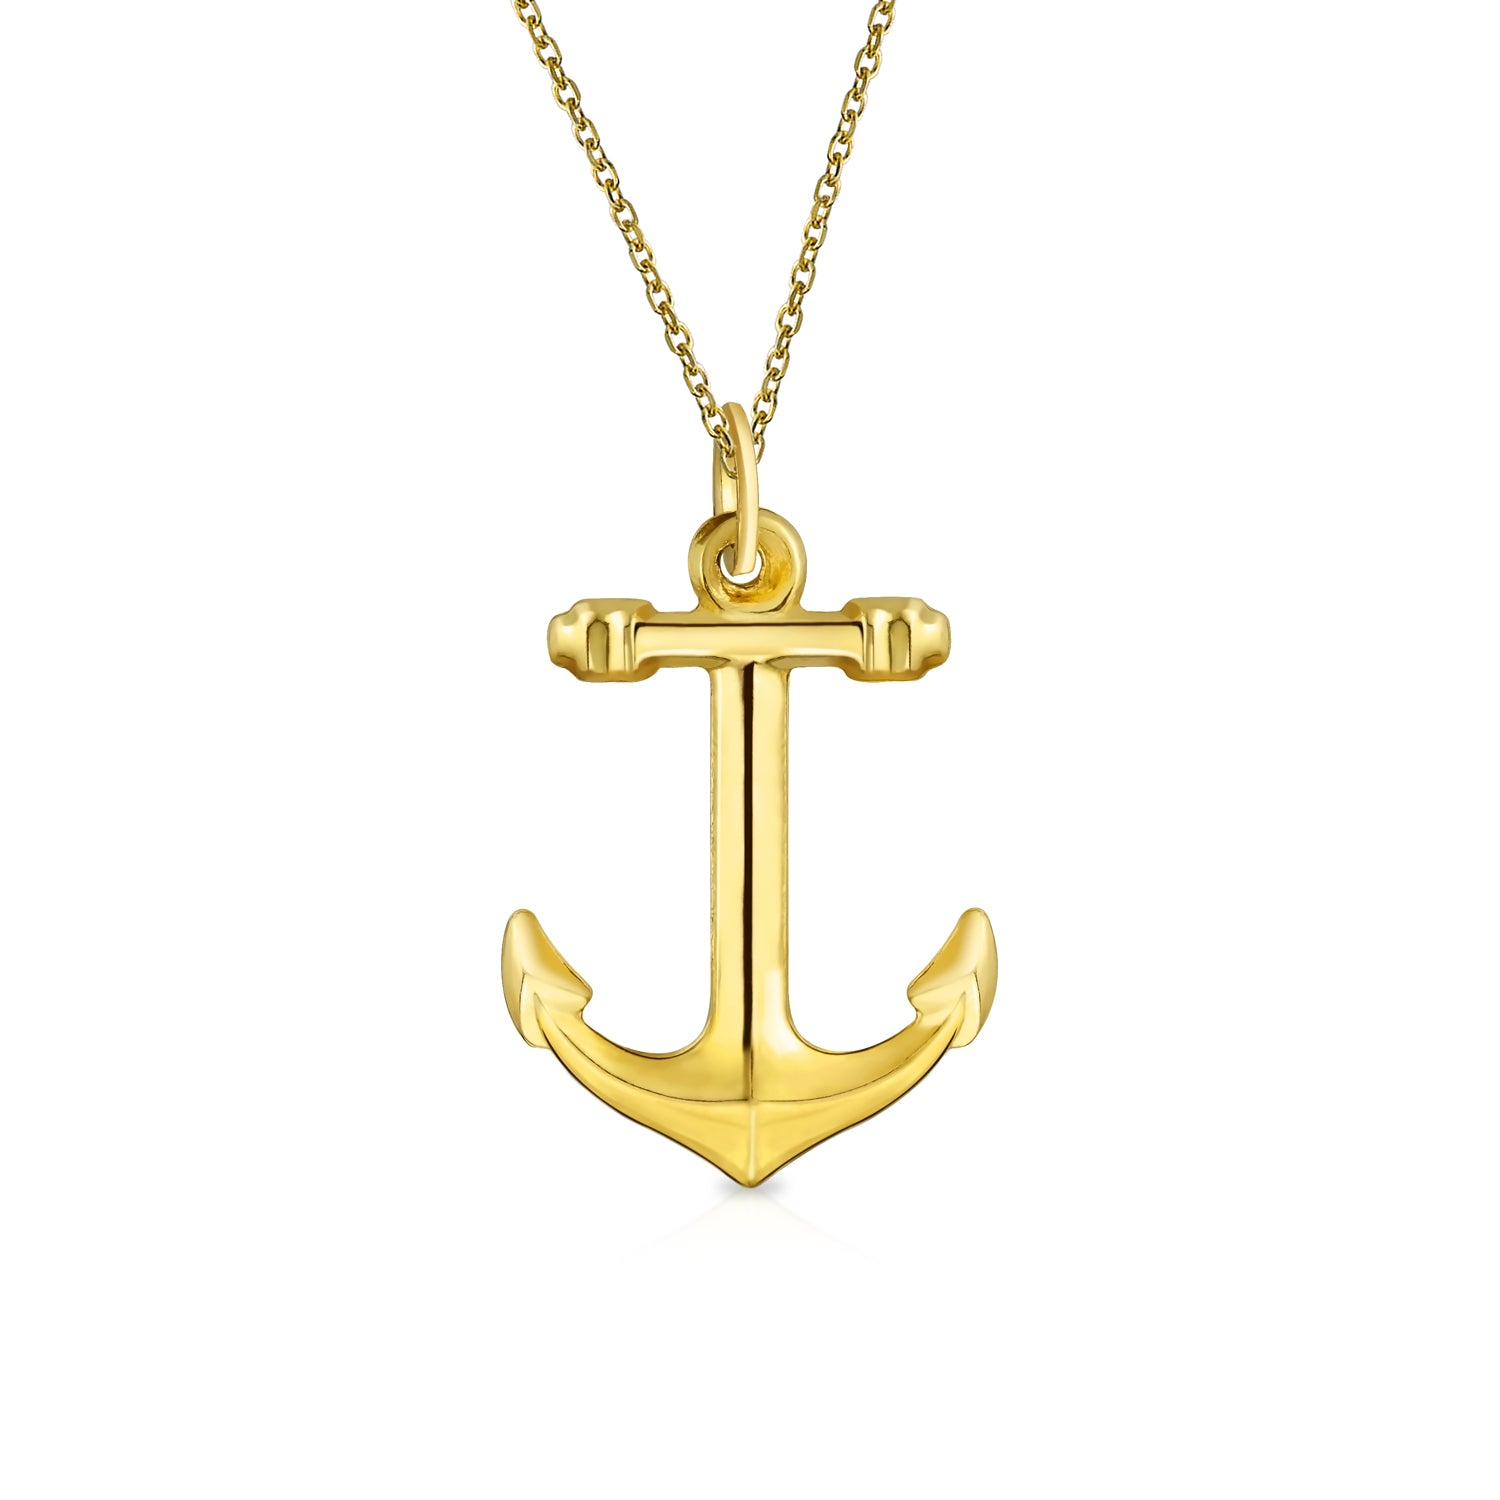 Precious Finds Jewelry Rope anchor .925 Sterling Silver Pendant Necklace